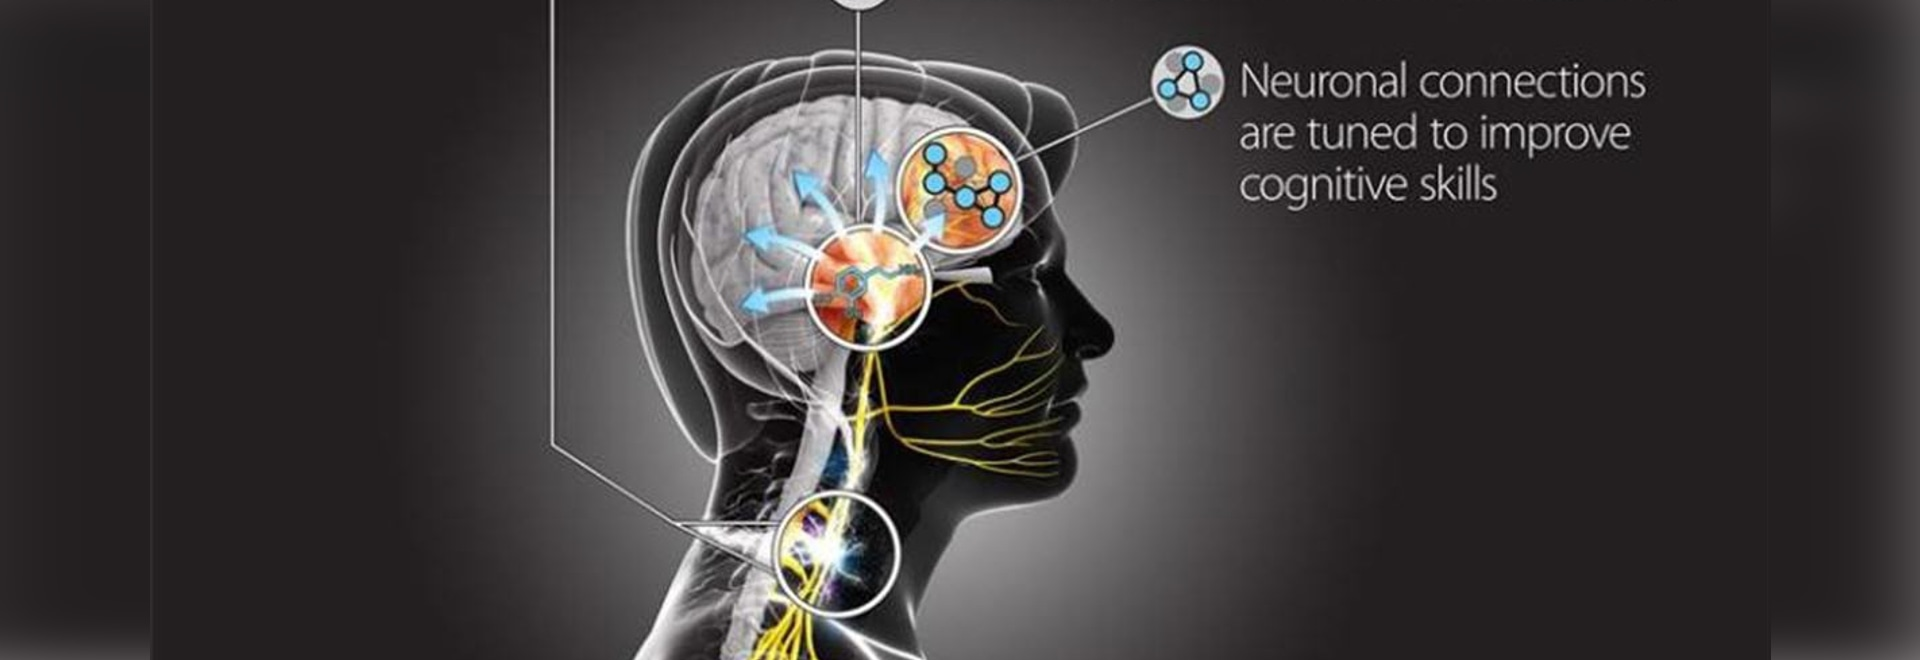 DARPA Funds Brain-stimulation Research to Speed Learning